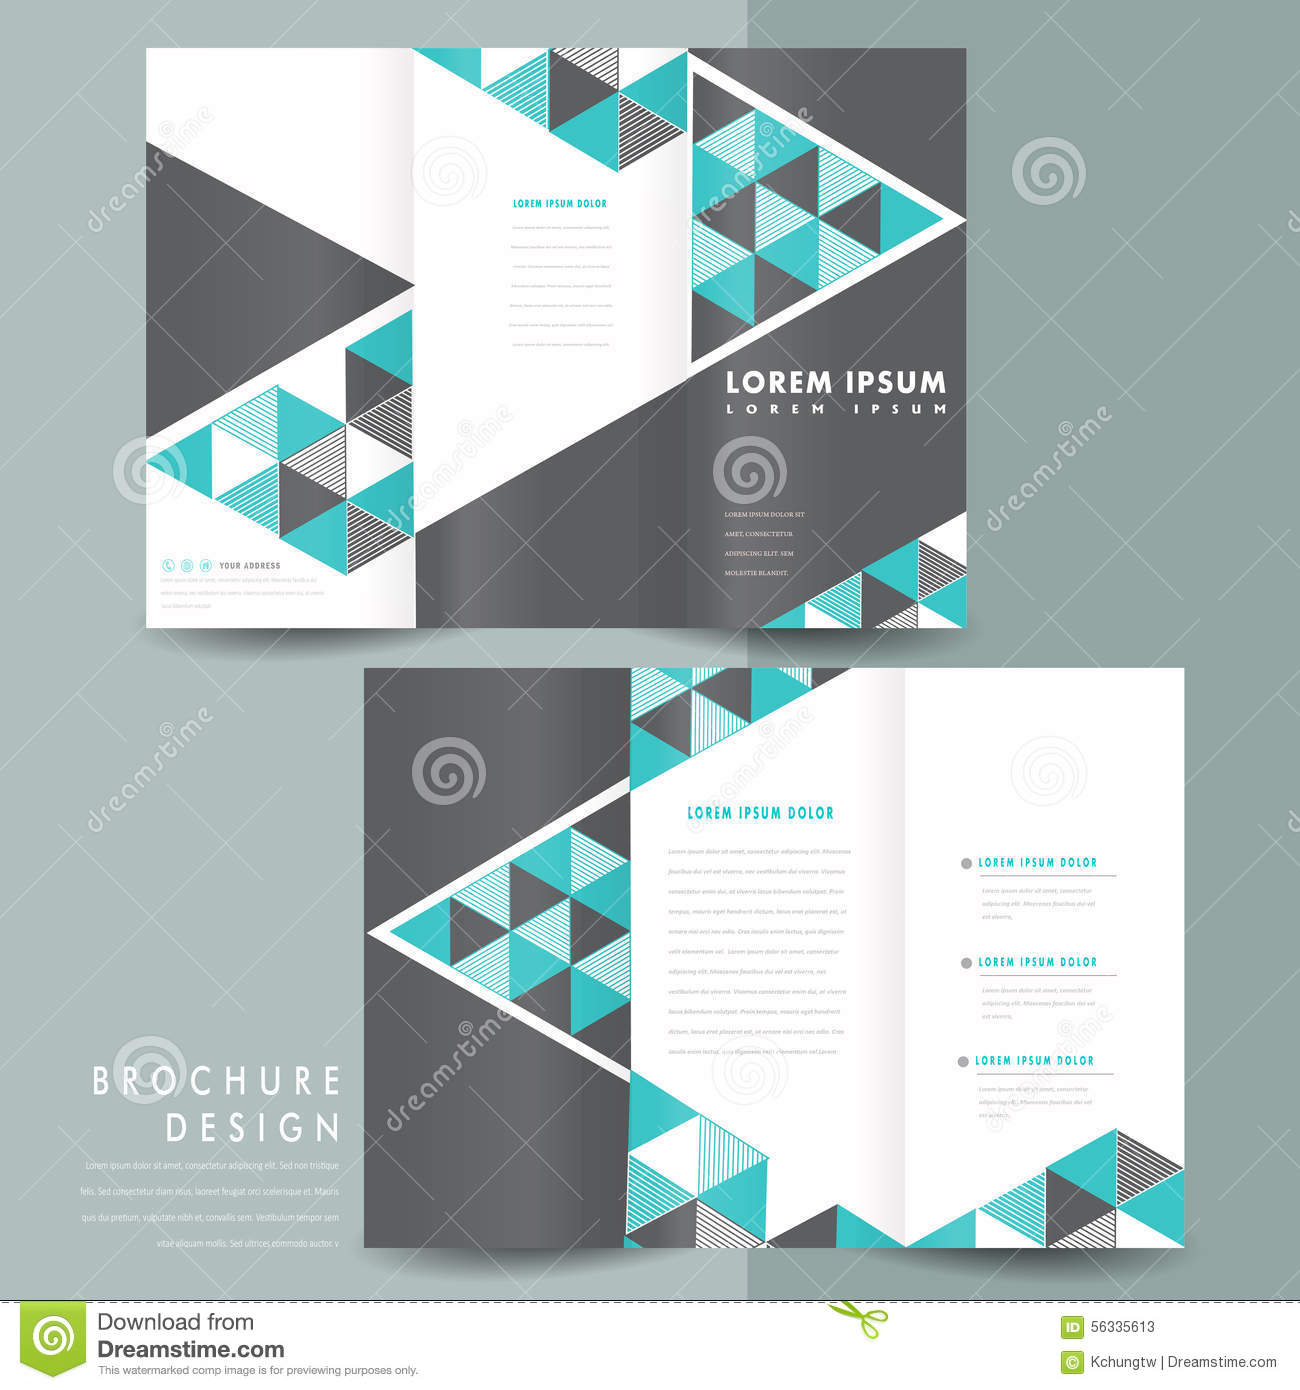 Beautiful Modern Tri Fold Brochure Template Design  Microsoft Tri Fold Brochure Template Free